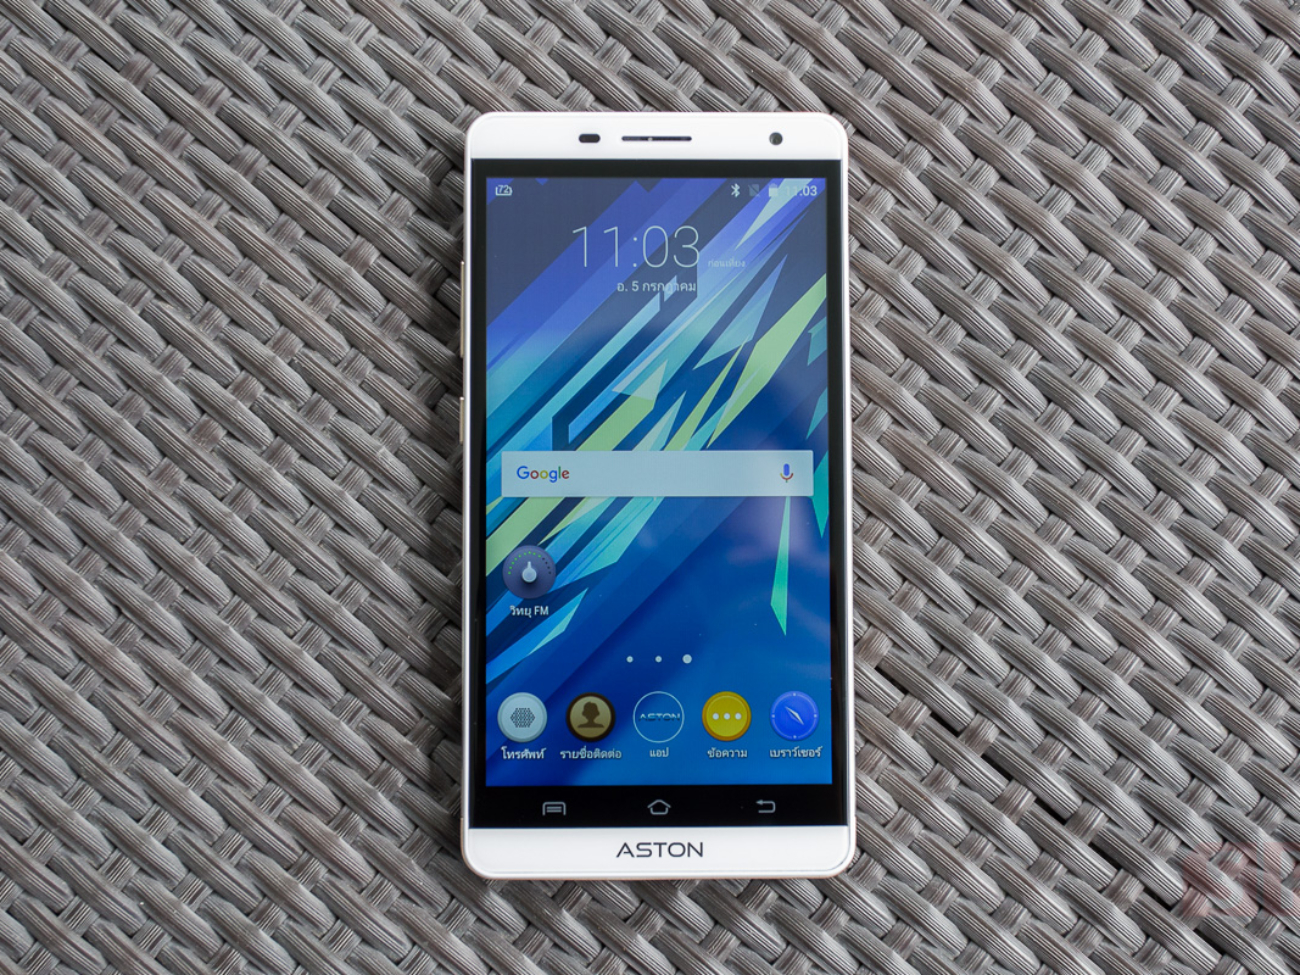 Review-ASTON-Luxury-4G-SpecPhone-00001